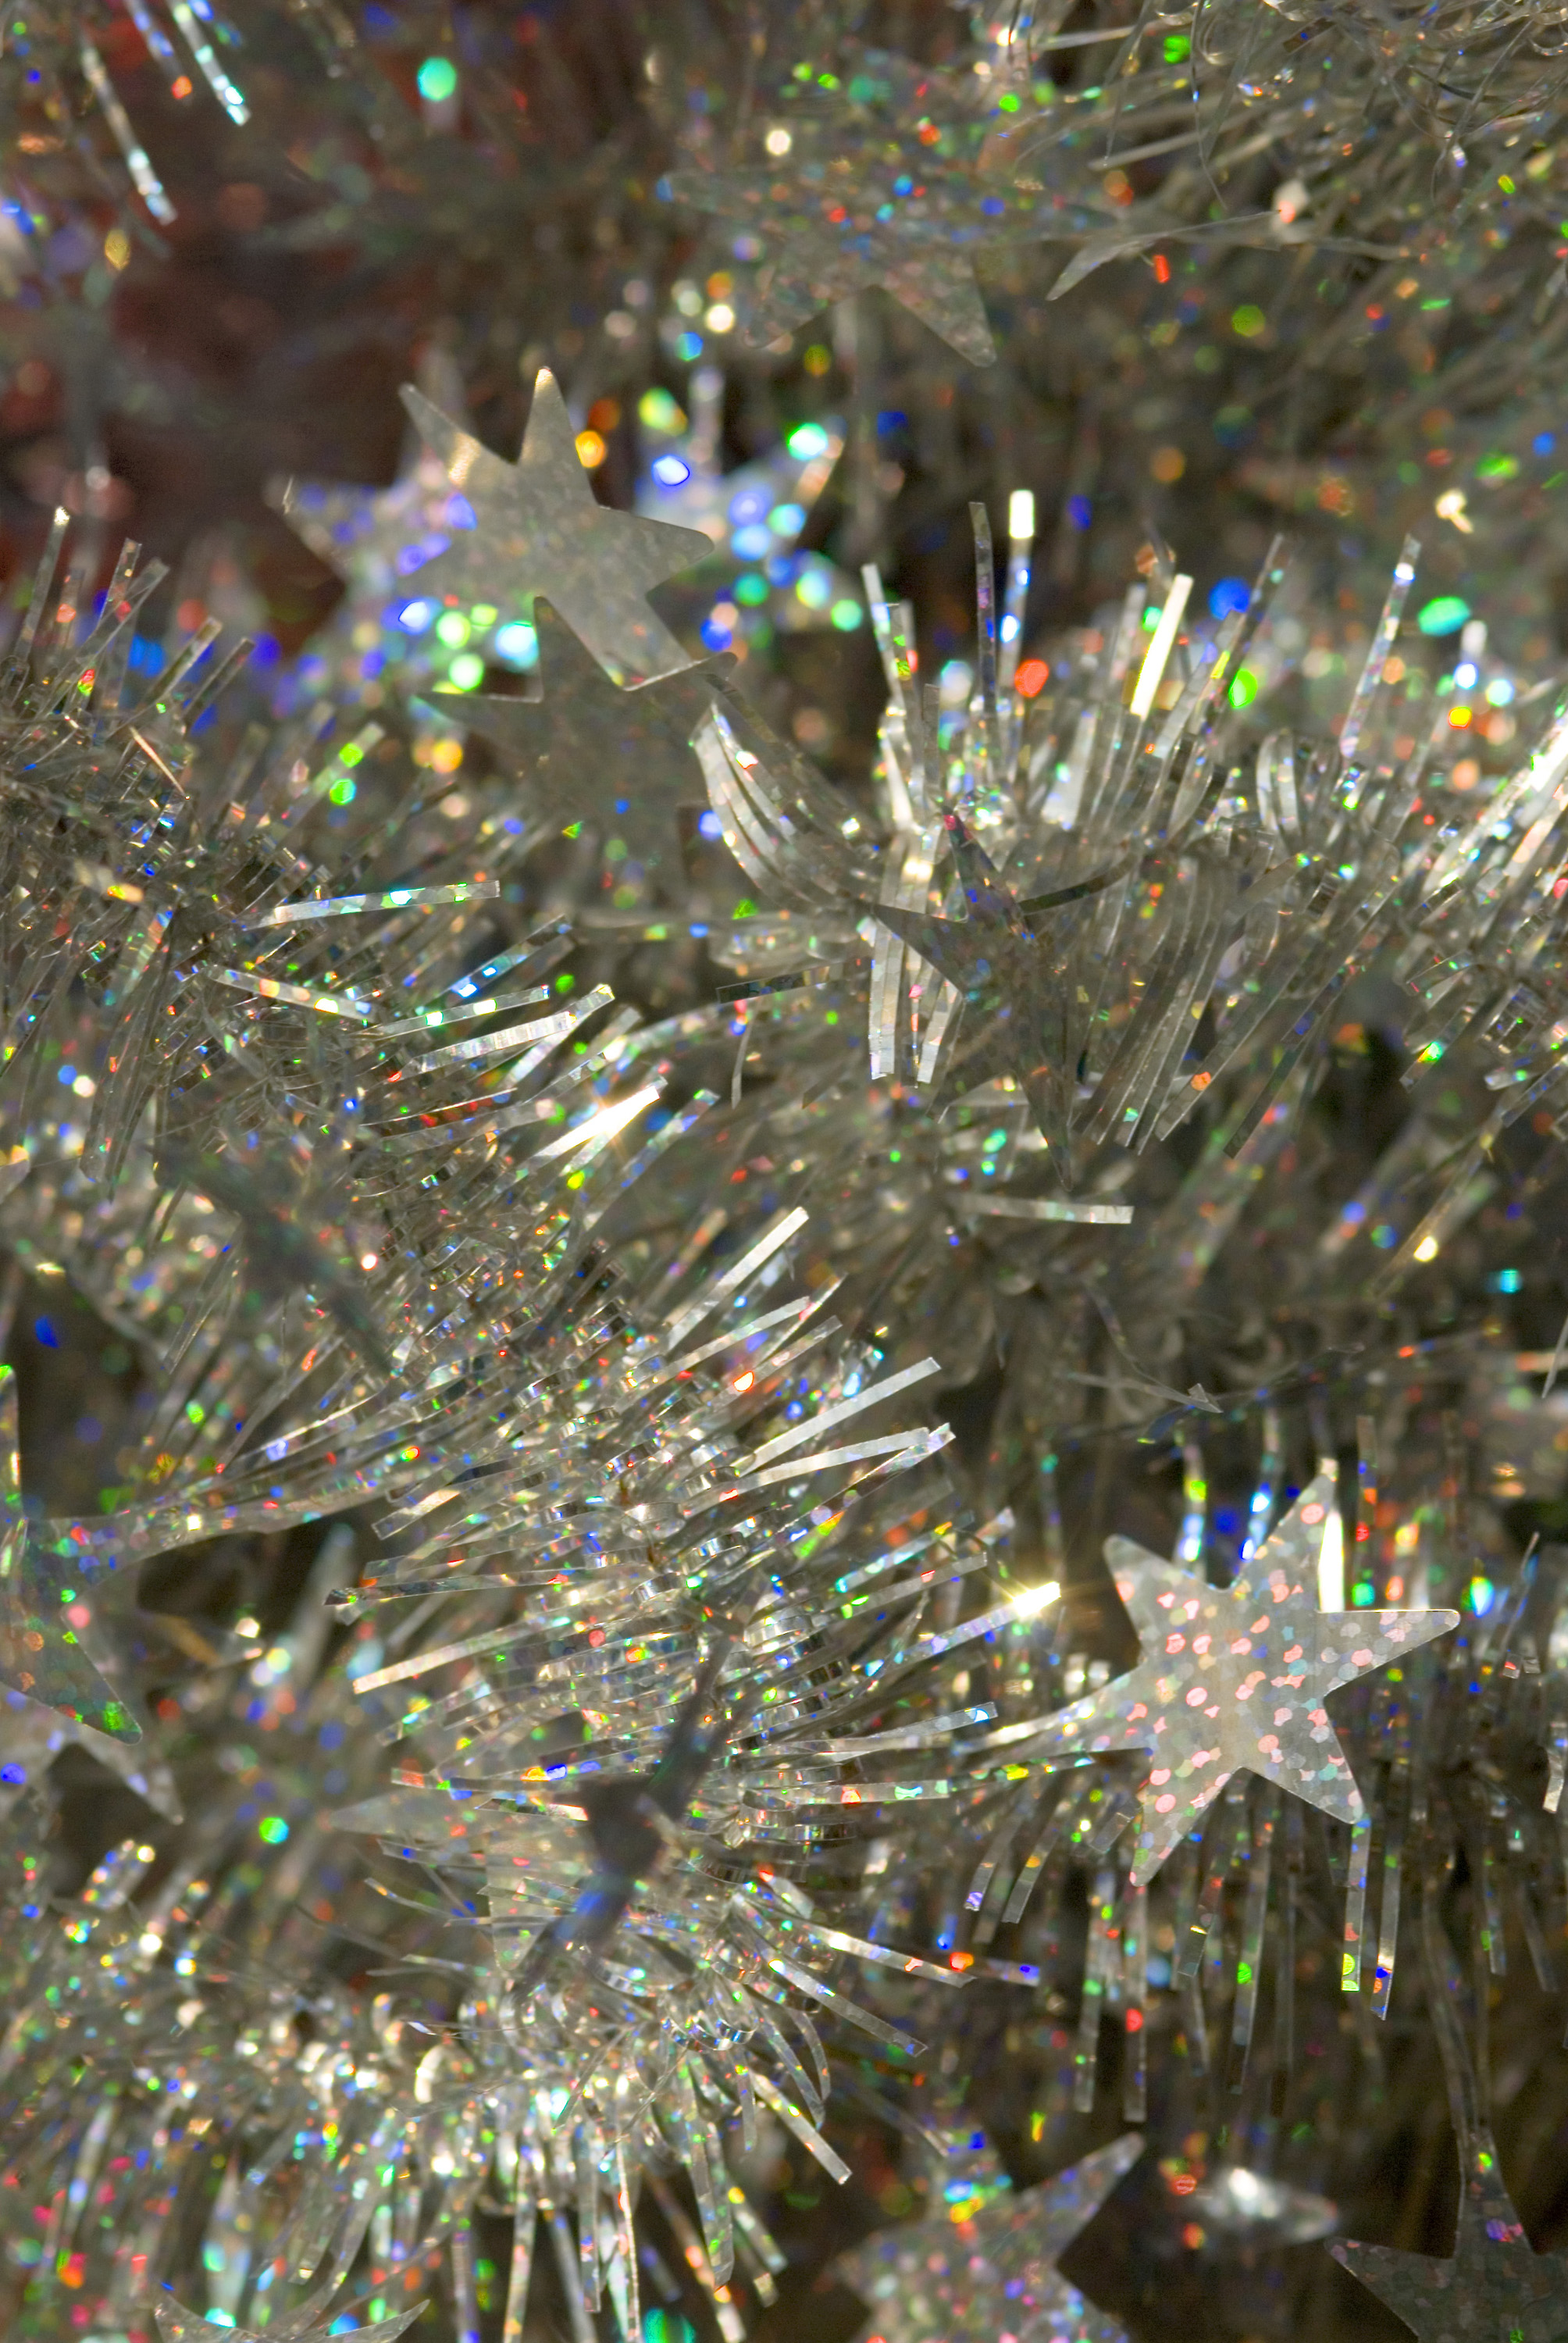 a festive silver and multicolour sparkling background of tinsel